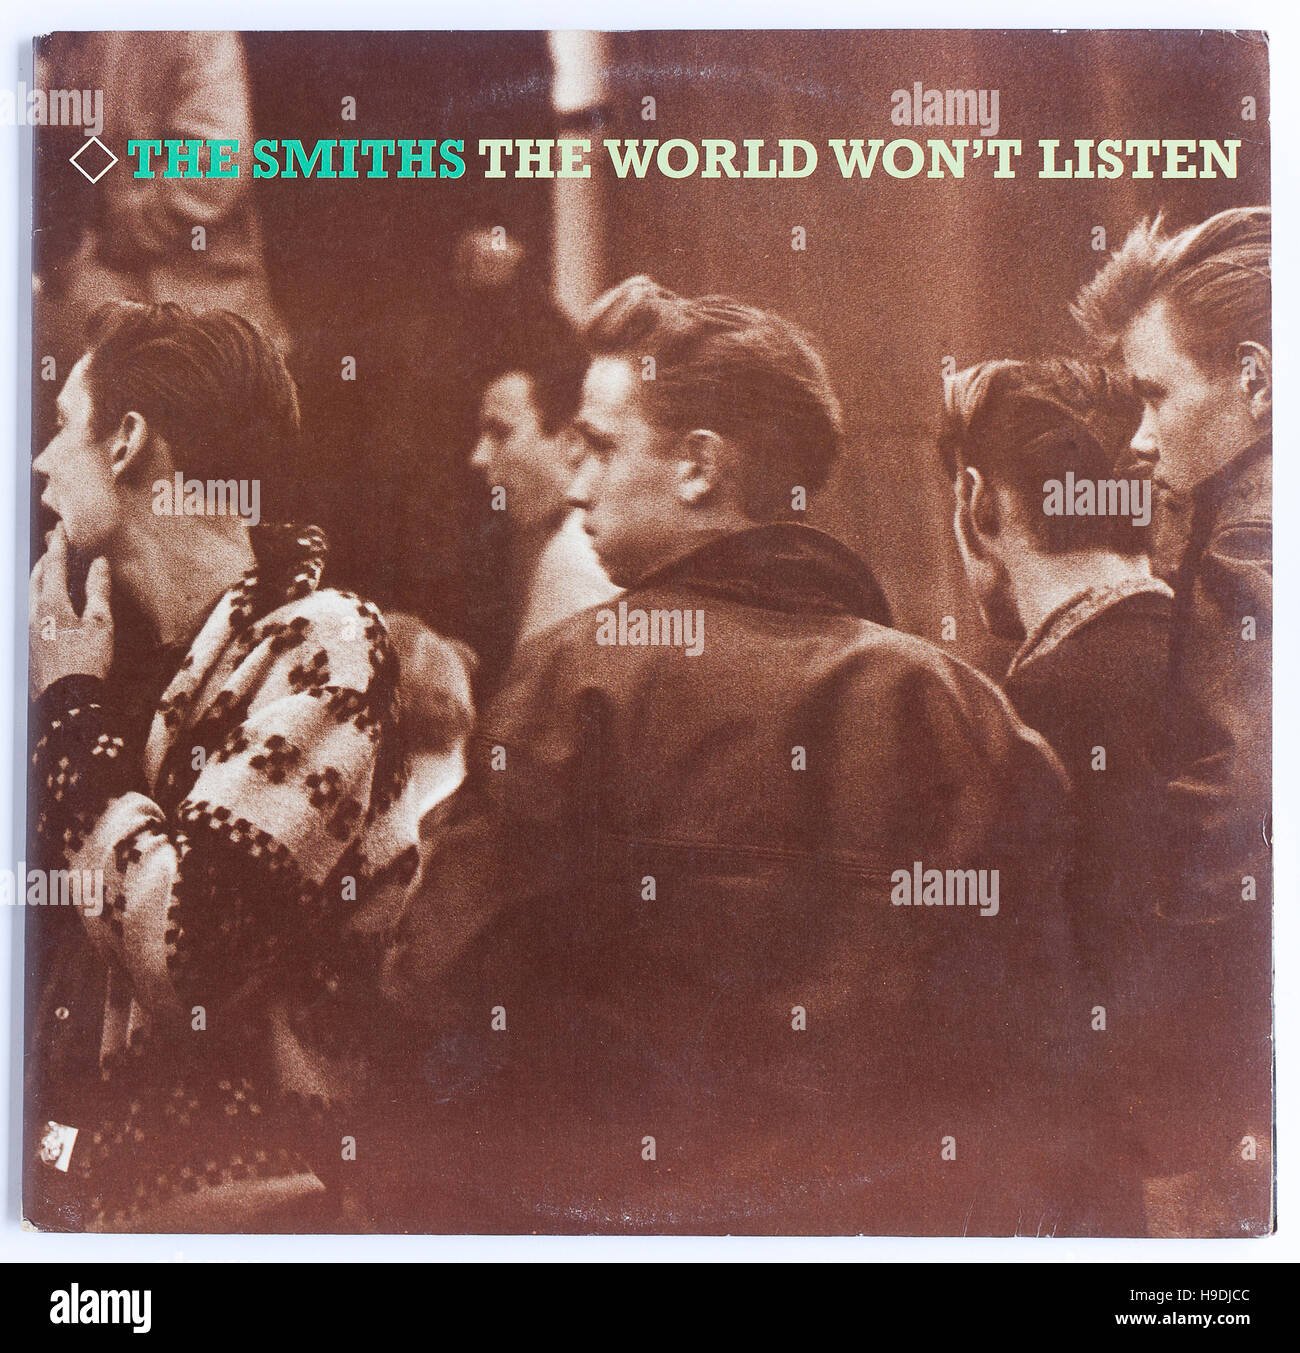 Cover of The Smiths 'The World Won't Listen 1987 compilation album on Rough Trade - Stock Image